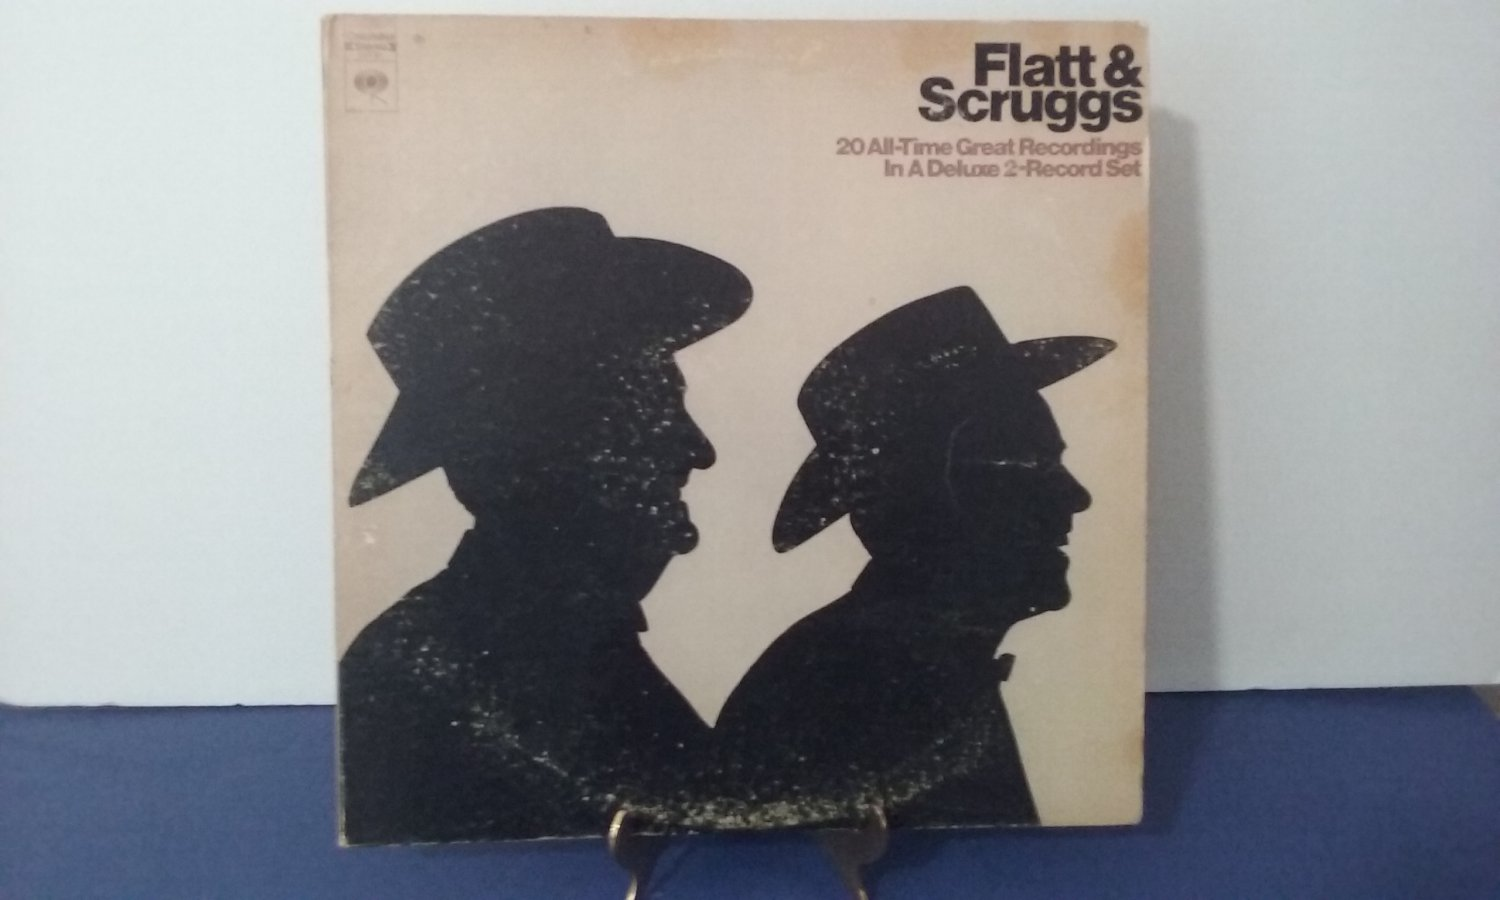 Flatt & Scruggs - 20 All-Time Great Recordings - Circa 1976